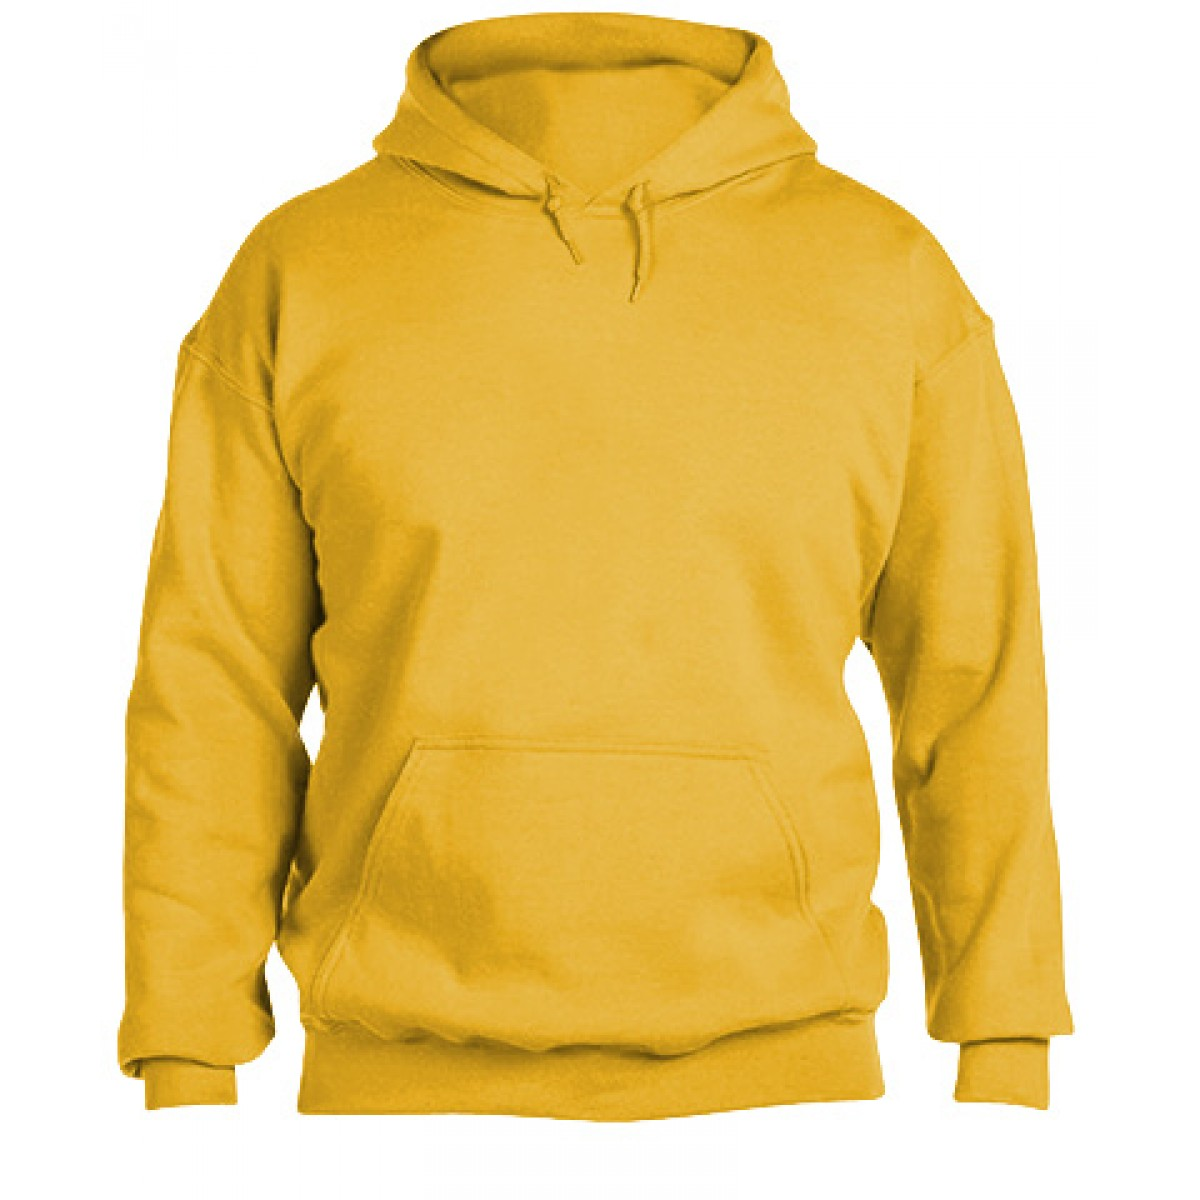 Hooded Sweatshirt 50/50 Heavy Blend -Gold-XL